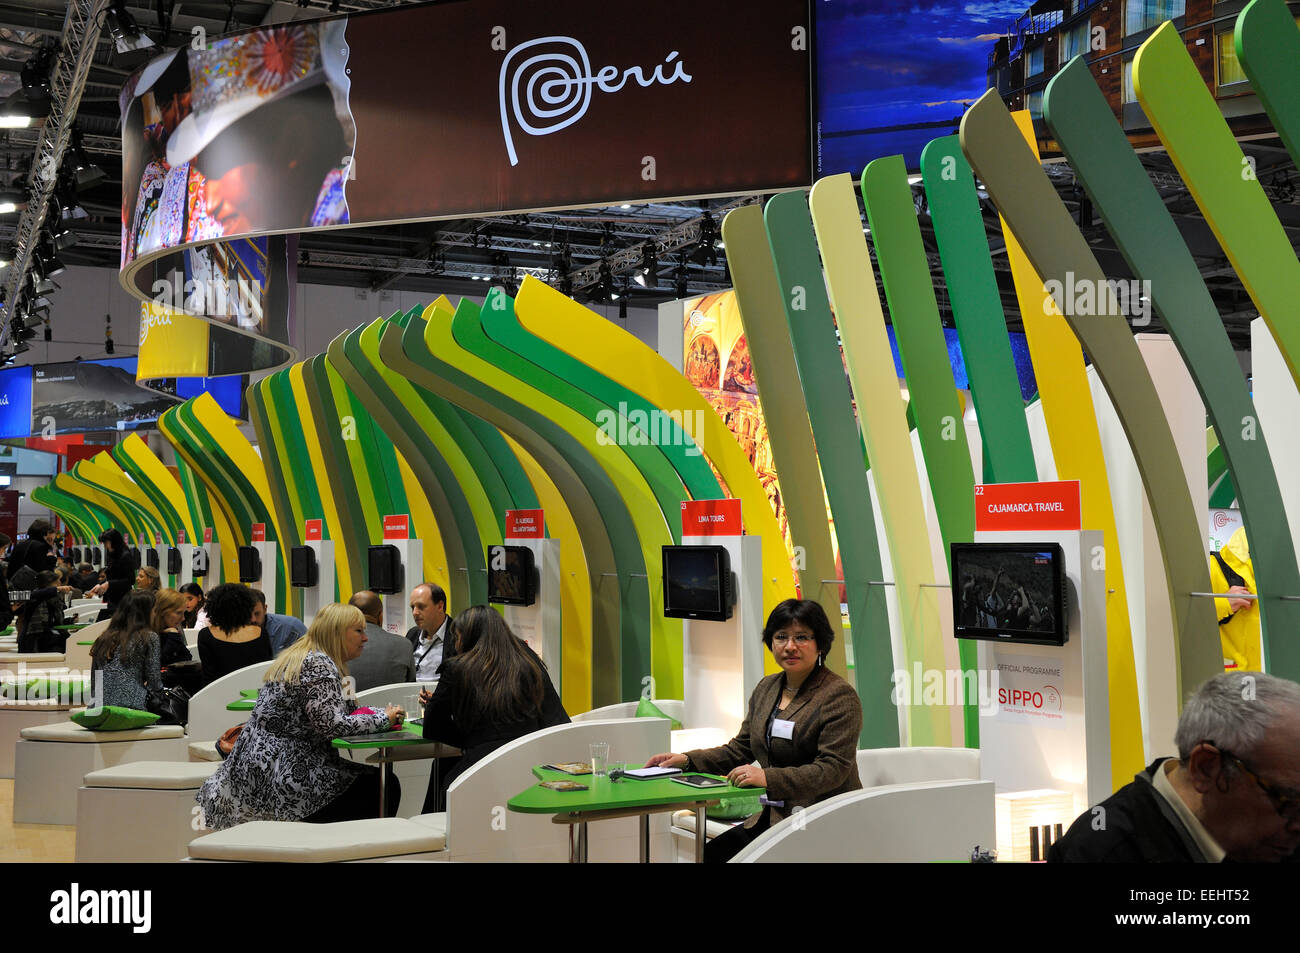 Peruvian stand at ExCel London World Travel Mart (WTM) November 2014 exhibition - Stock Image